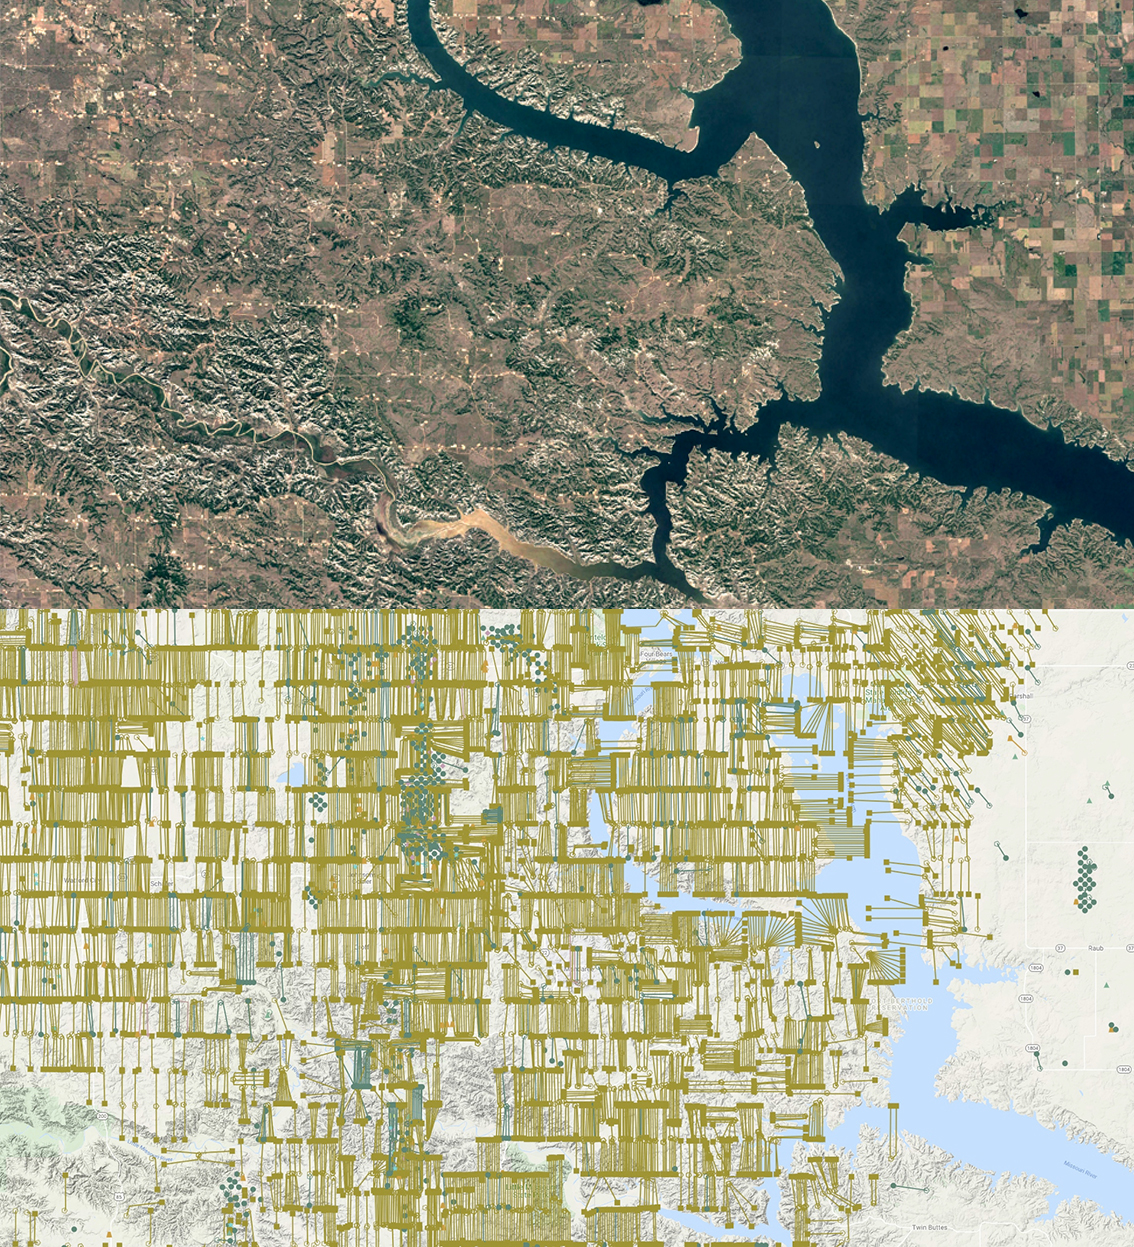 Top: Satellite image of oil well pads on the lands of the Mandan, Hidatsa and Arikara Nation, 2020. Source: Google Earth   Bottom: Visualization of horizontally drilled and fracked oil and gas wells on the lands of the Mandan, Hidatsa and Arikara Nation, 2020. Source: WellDatabase.com